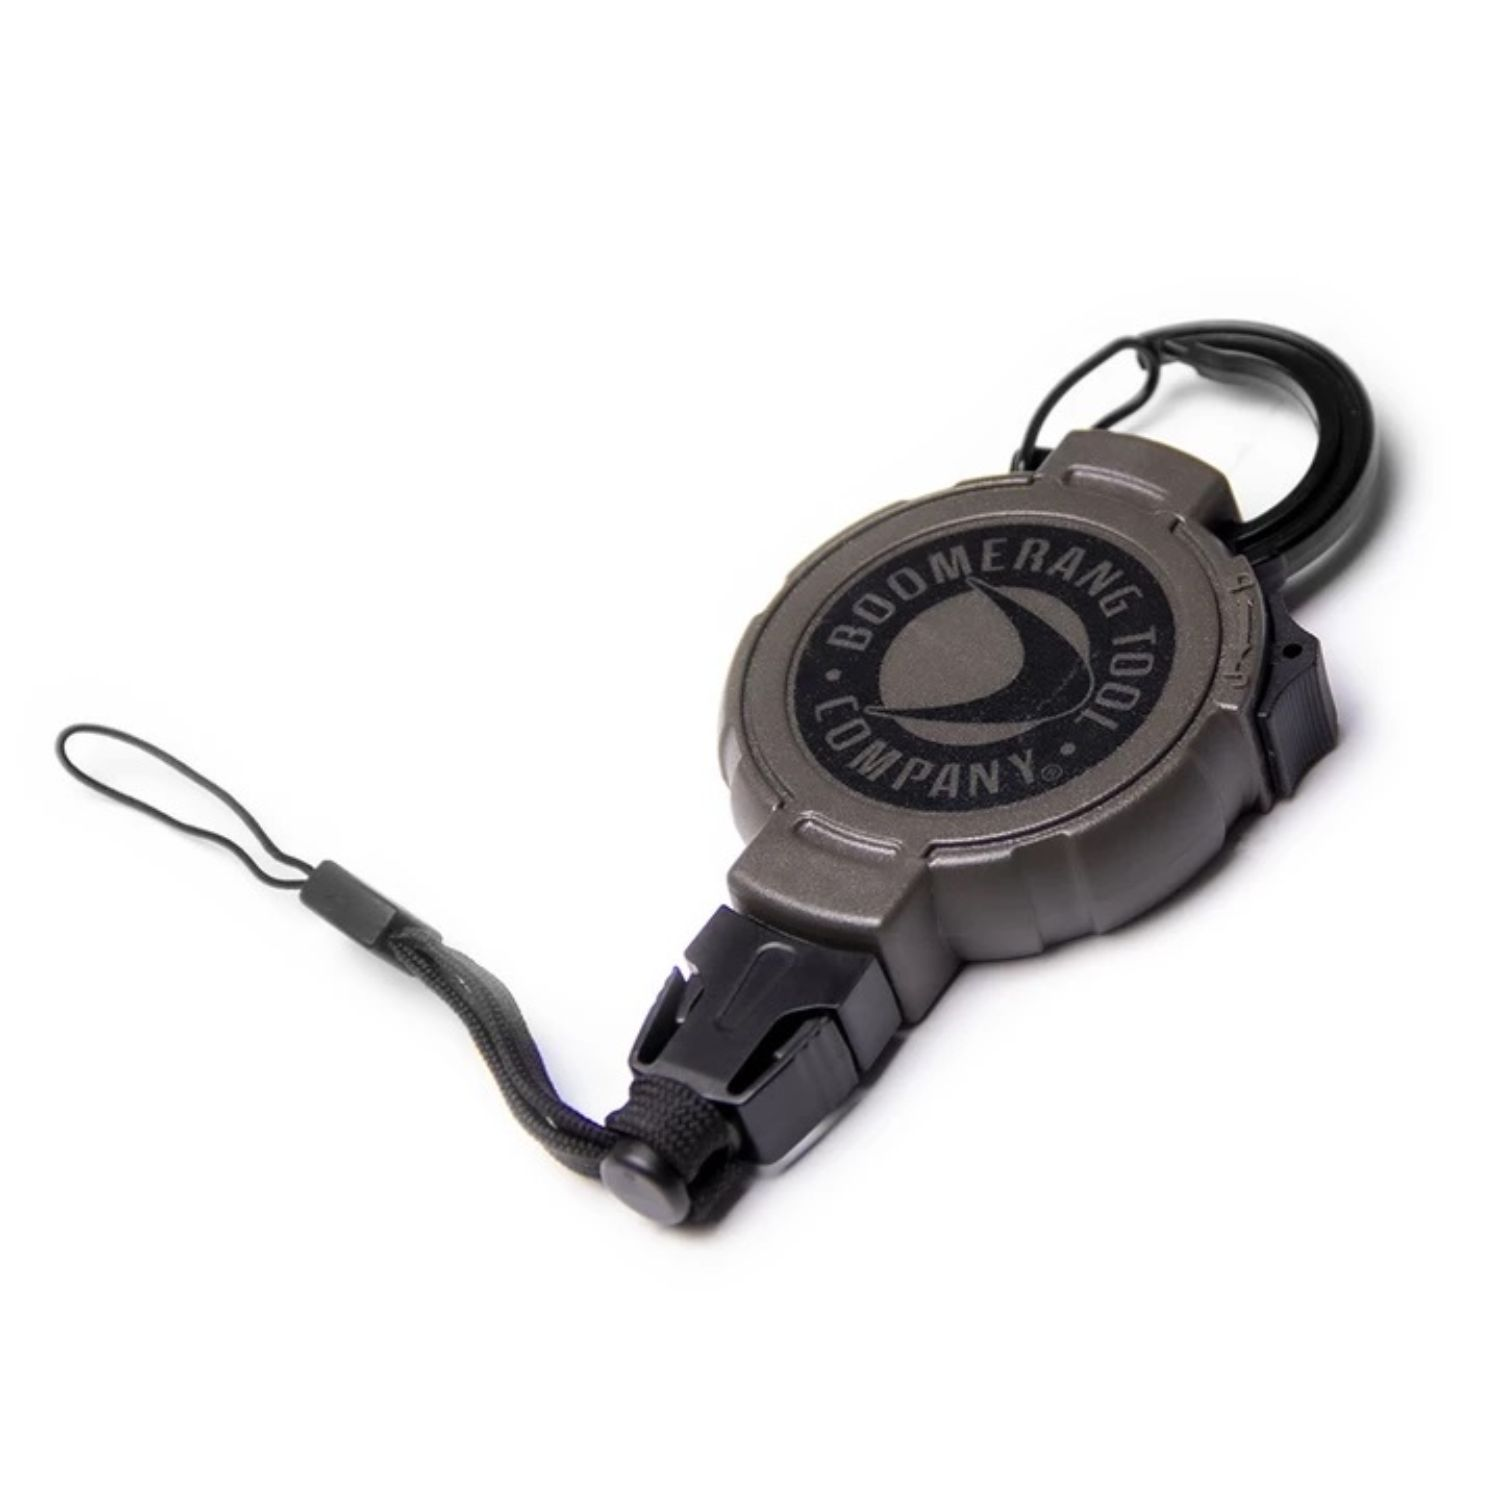 Boomerang Hunt Gear Electronics Tether LRG 48 in Carbiner